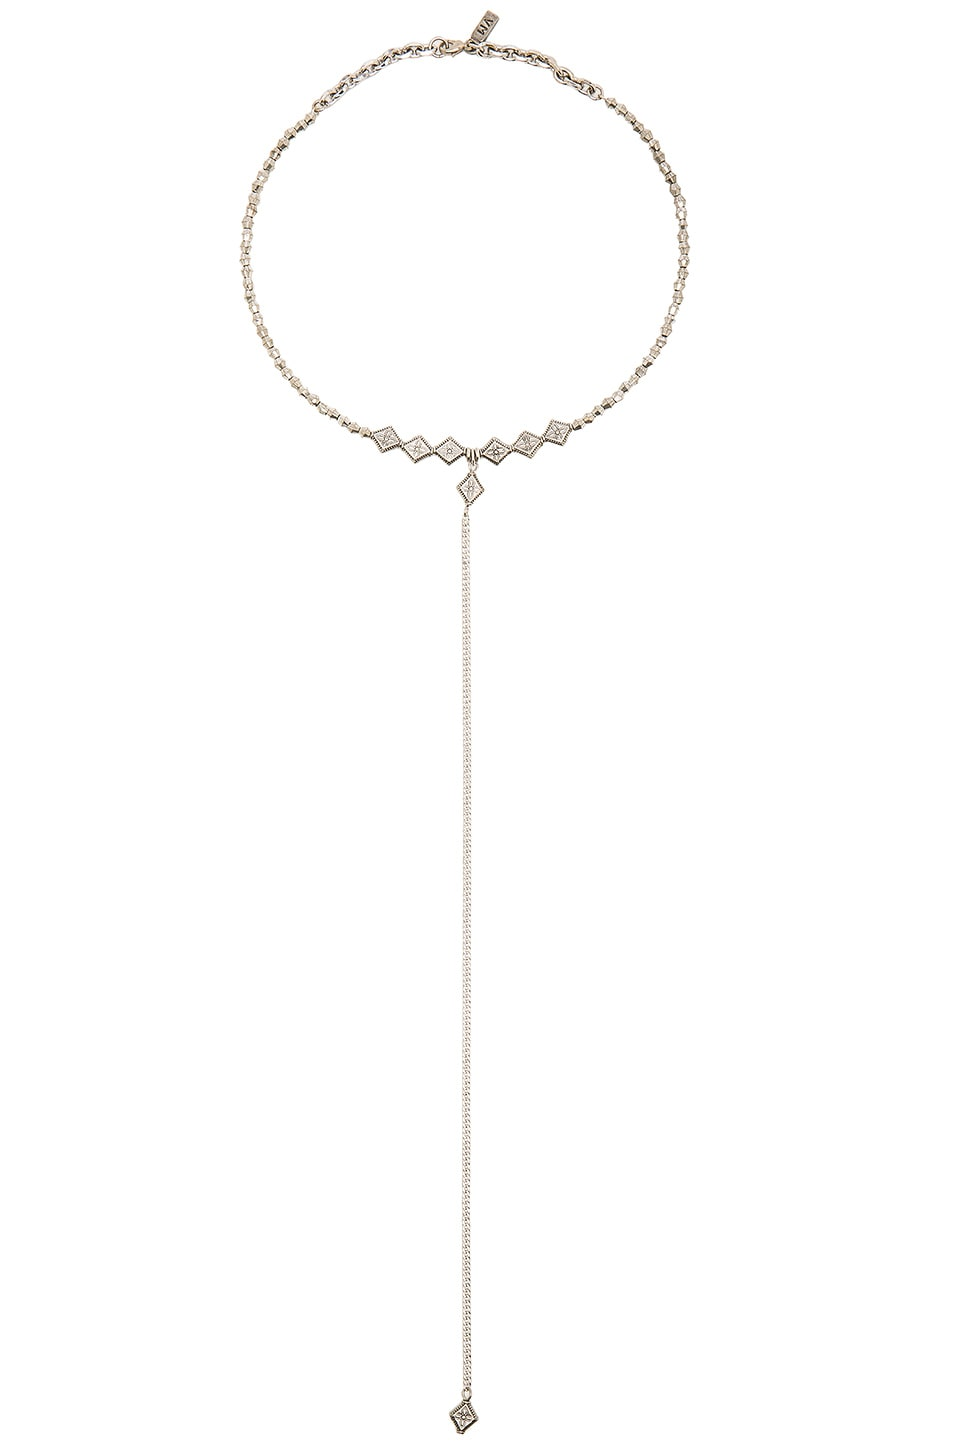 Vanessa Mooney The Elysee Necklace in Silver